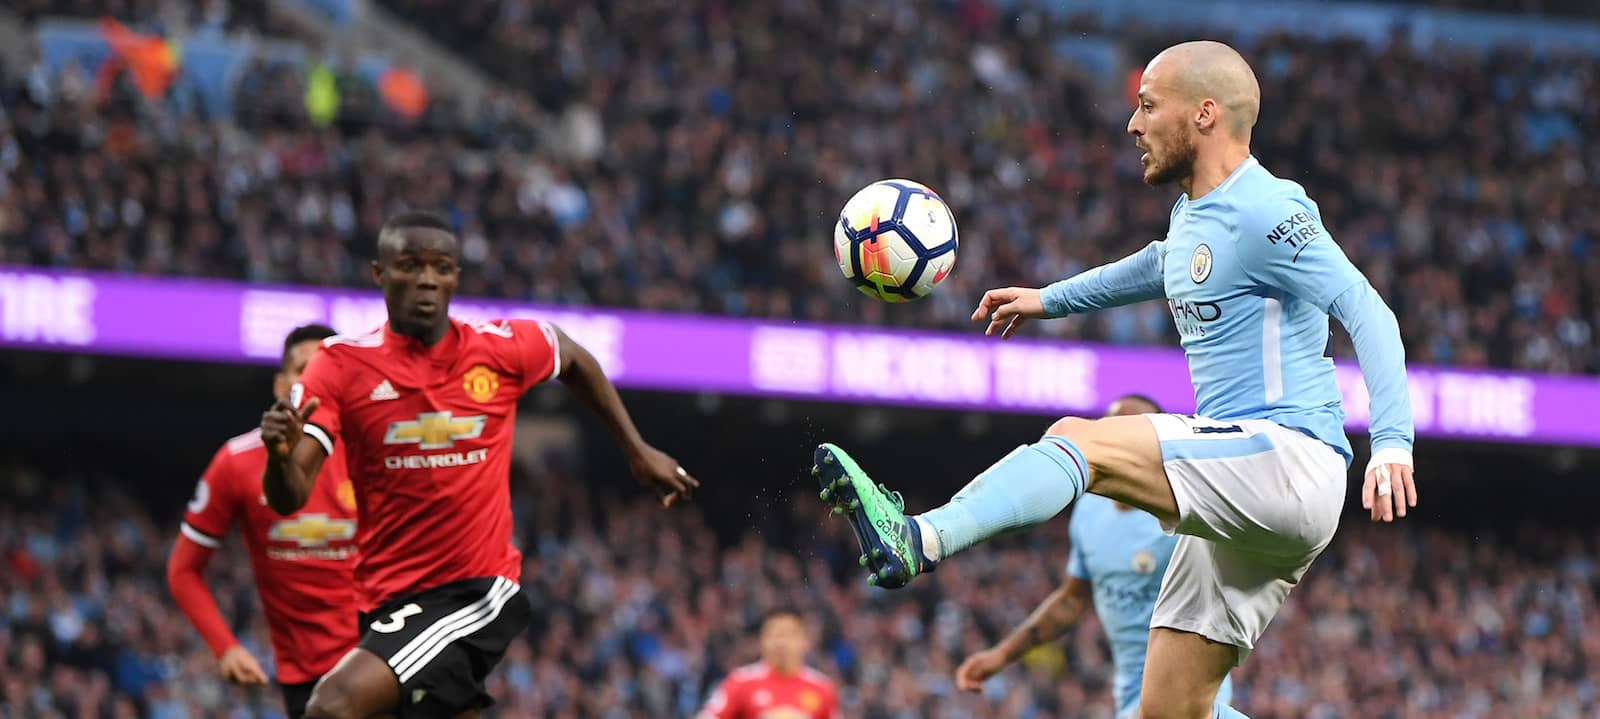 Danilo hits out at Manchester United for playing 'long balls' in derby victory